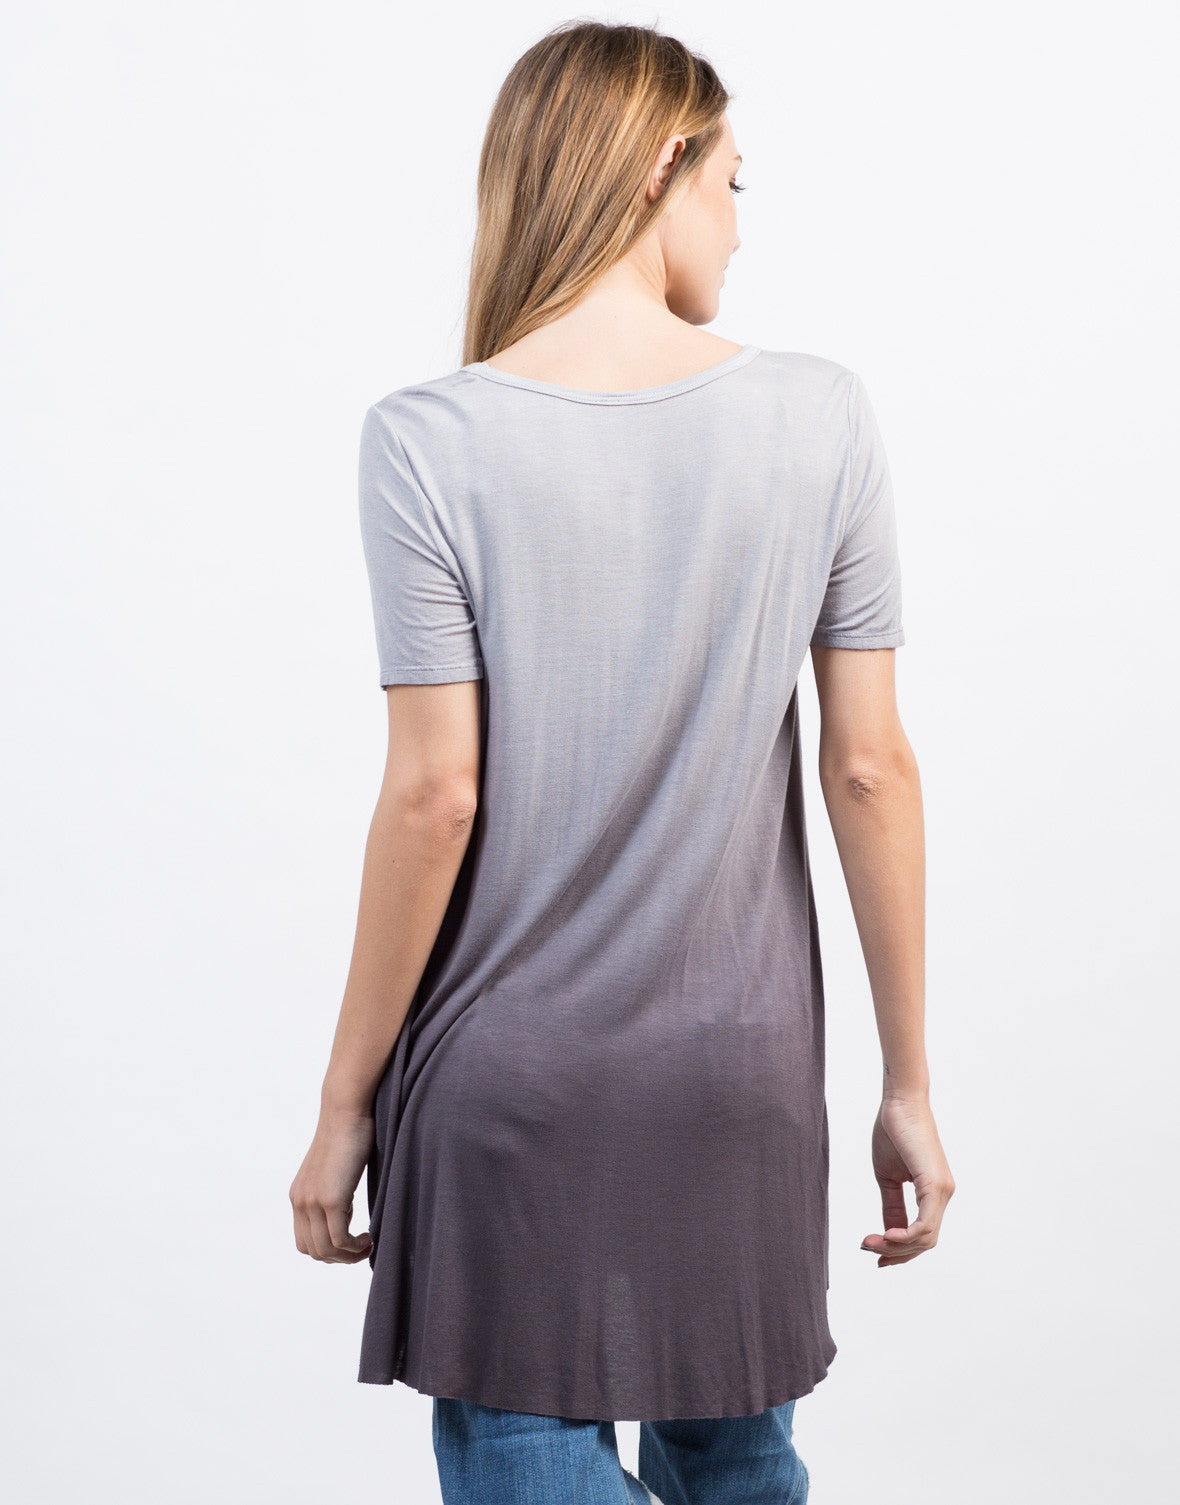 Back View of Flowy Ombre Tunic Top